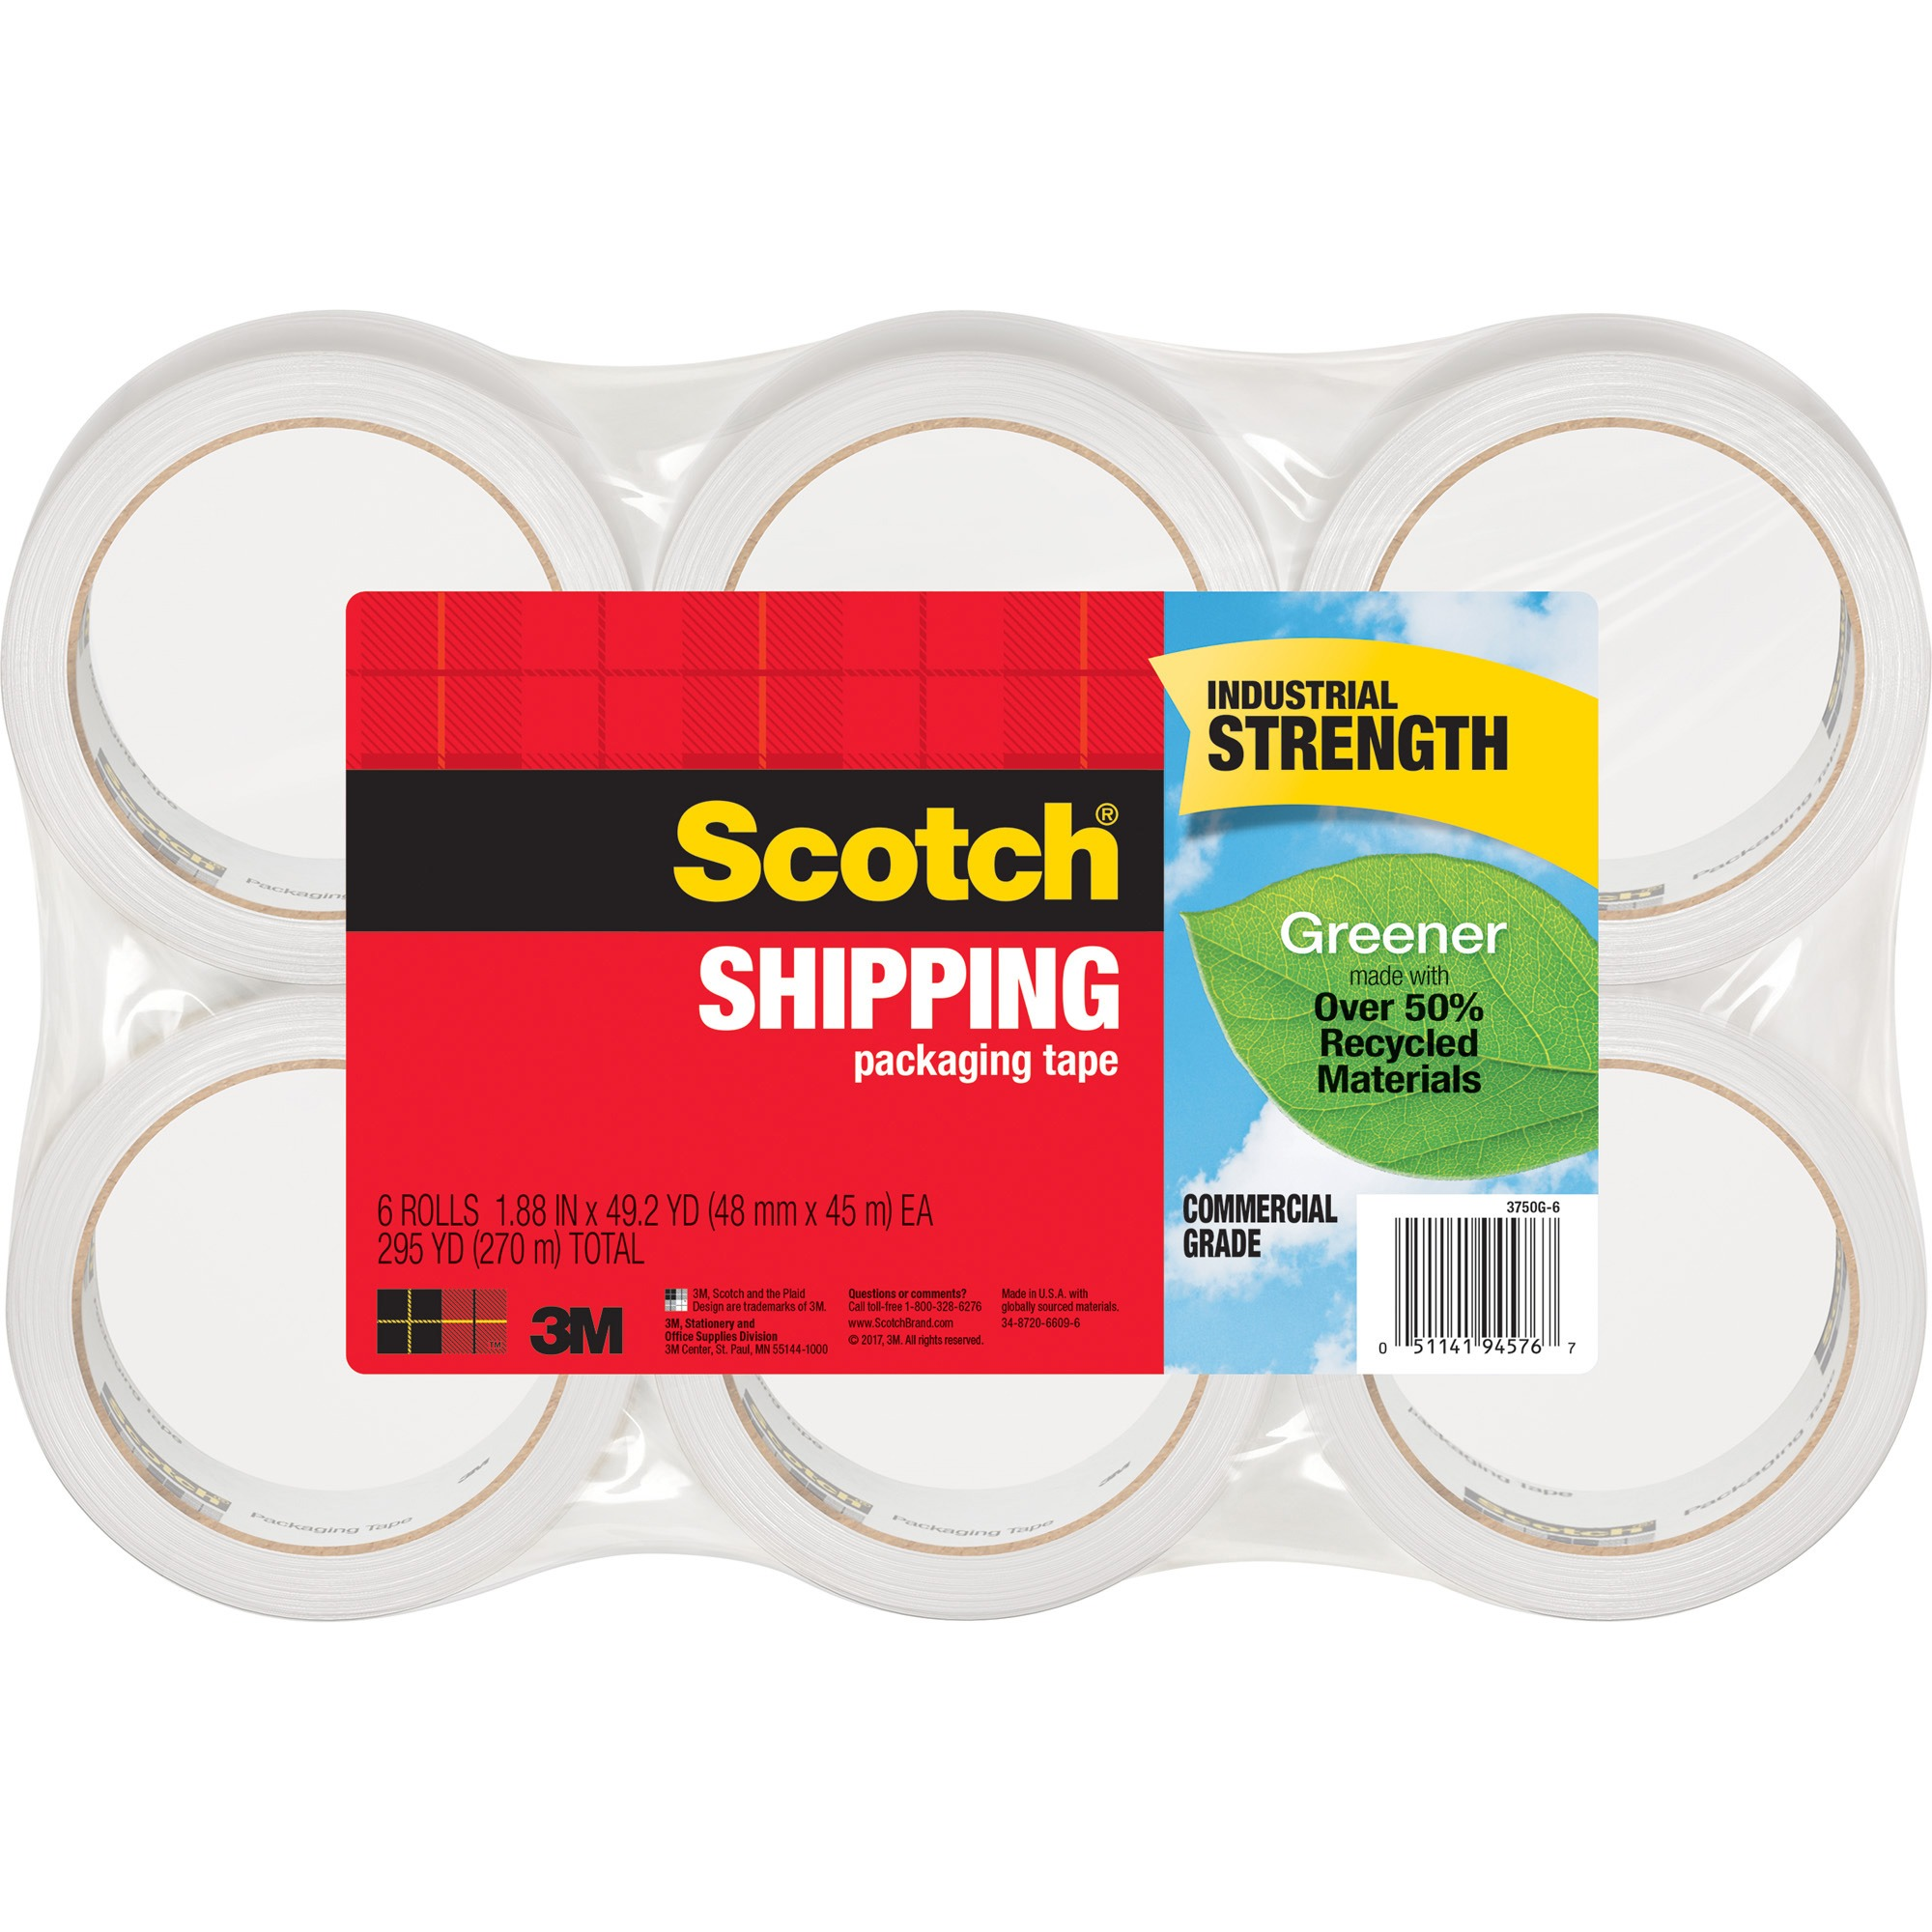 "Scotch Greener Commercial Grade Shipping Packaging Tape, 1.88"" x 54.60 yds, Clear, 6 / Pack (Quantity)"